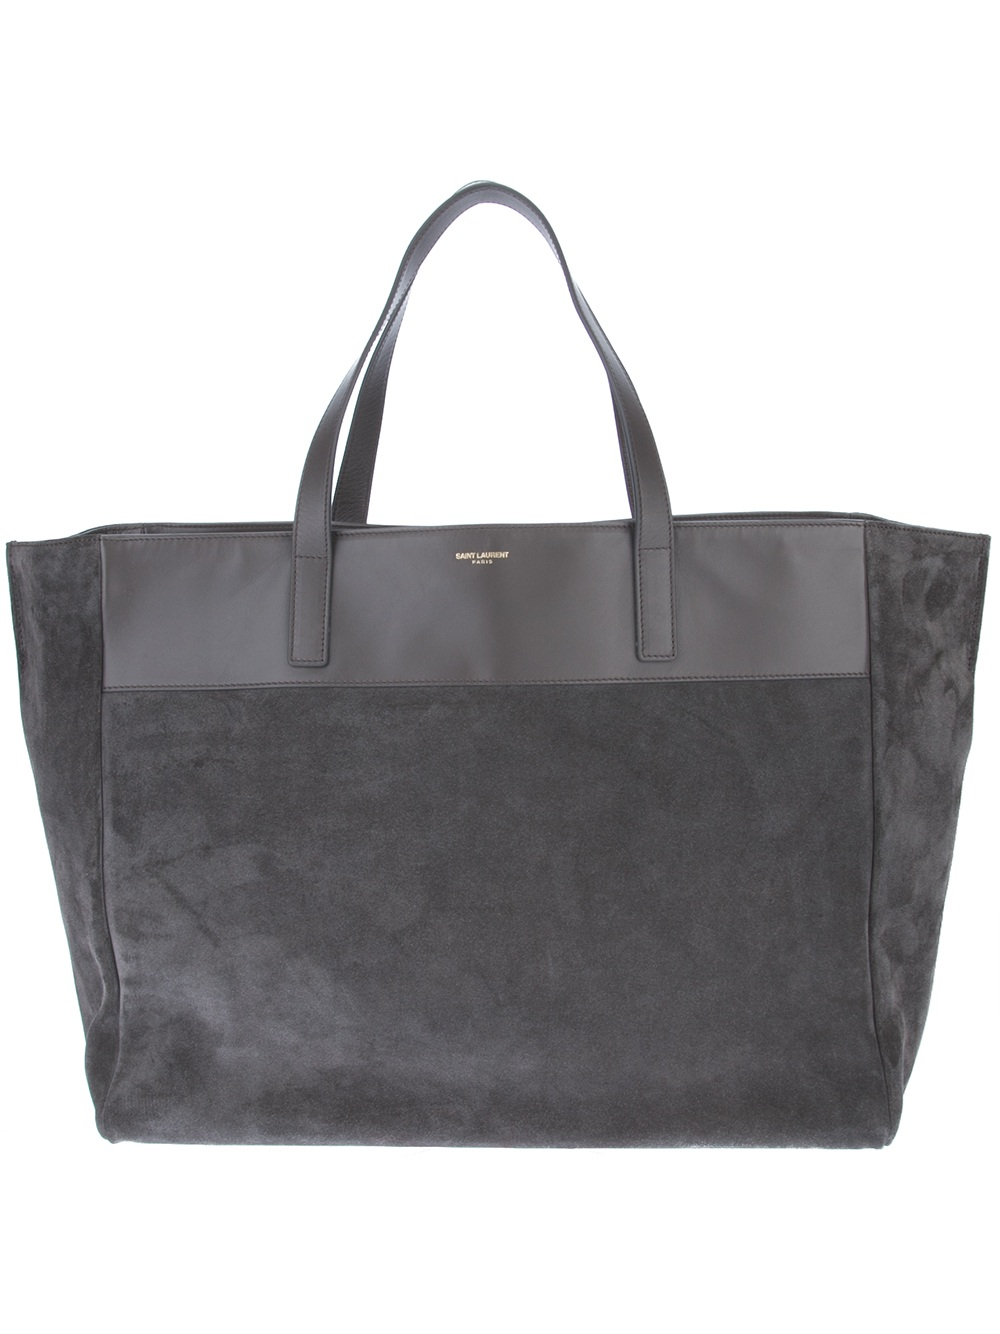 saint laurent reversible shopper tote in gray grey lyst. Black Bedroom Furniture Sets. Home Design Ideas